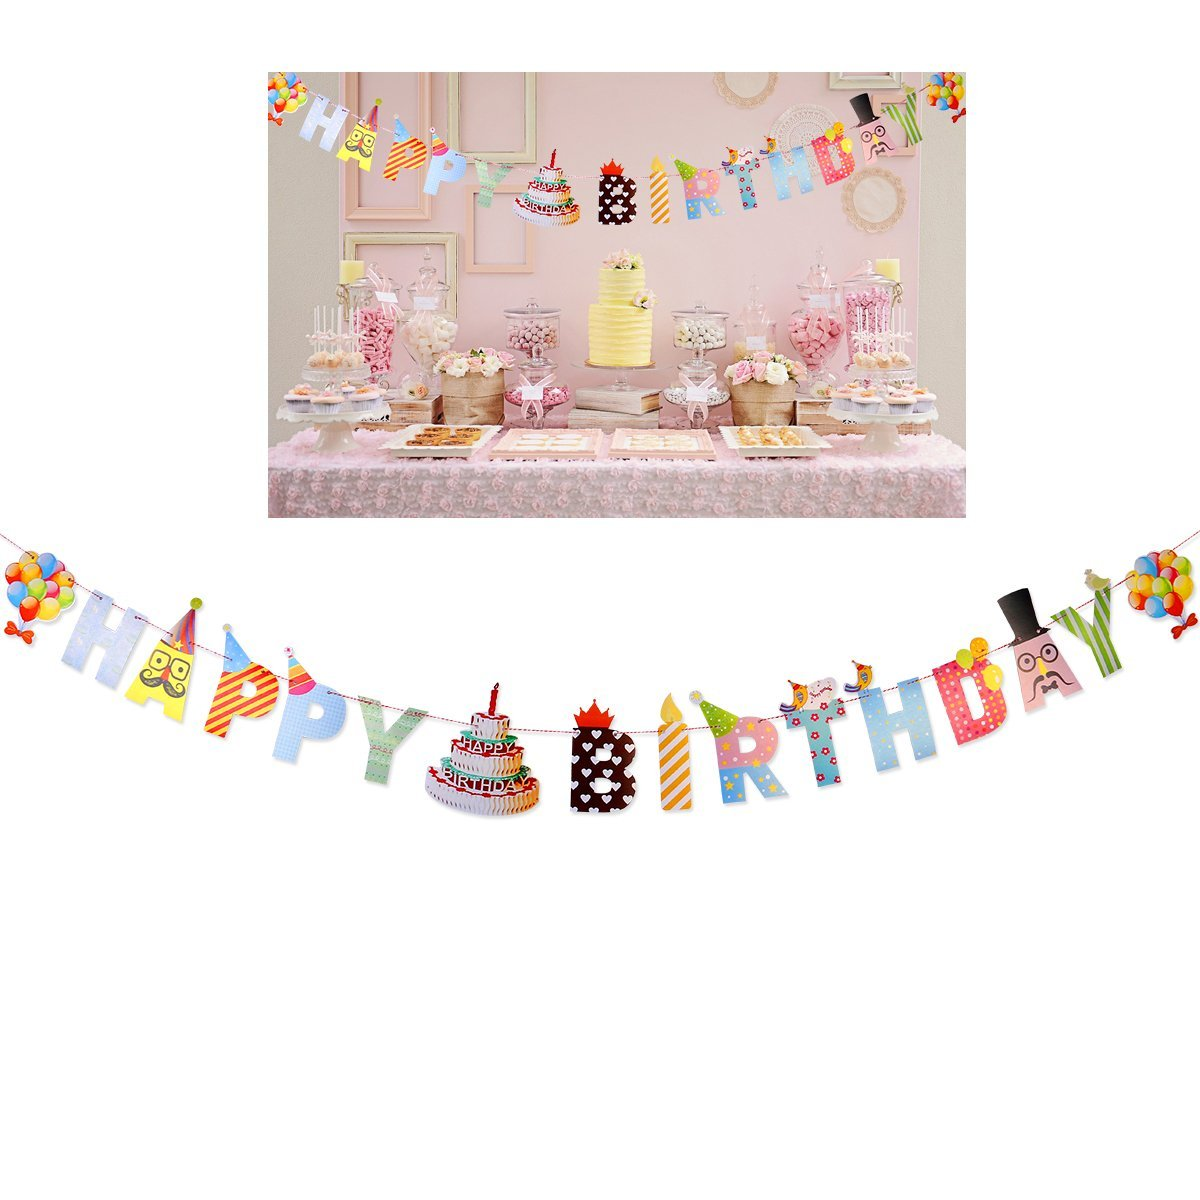 Tinksky Happy Birthday Banners Personalized Banners for Birthday Party Decoration